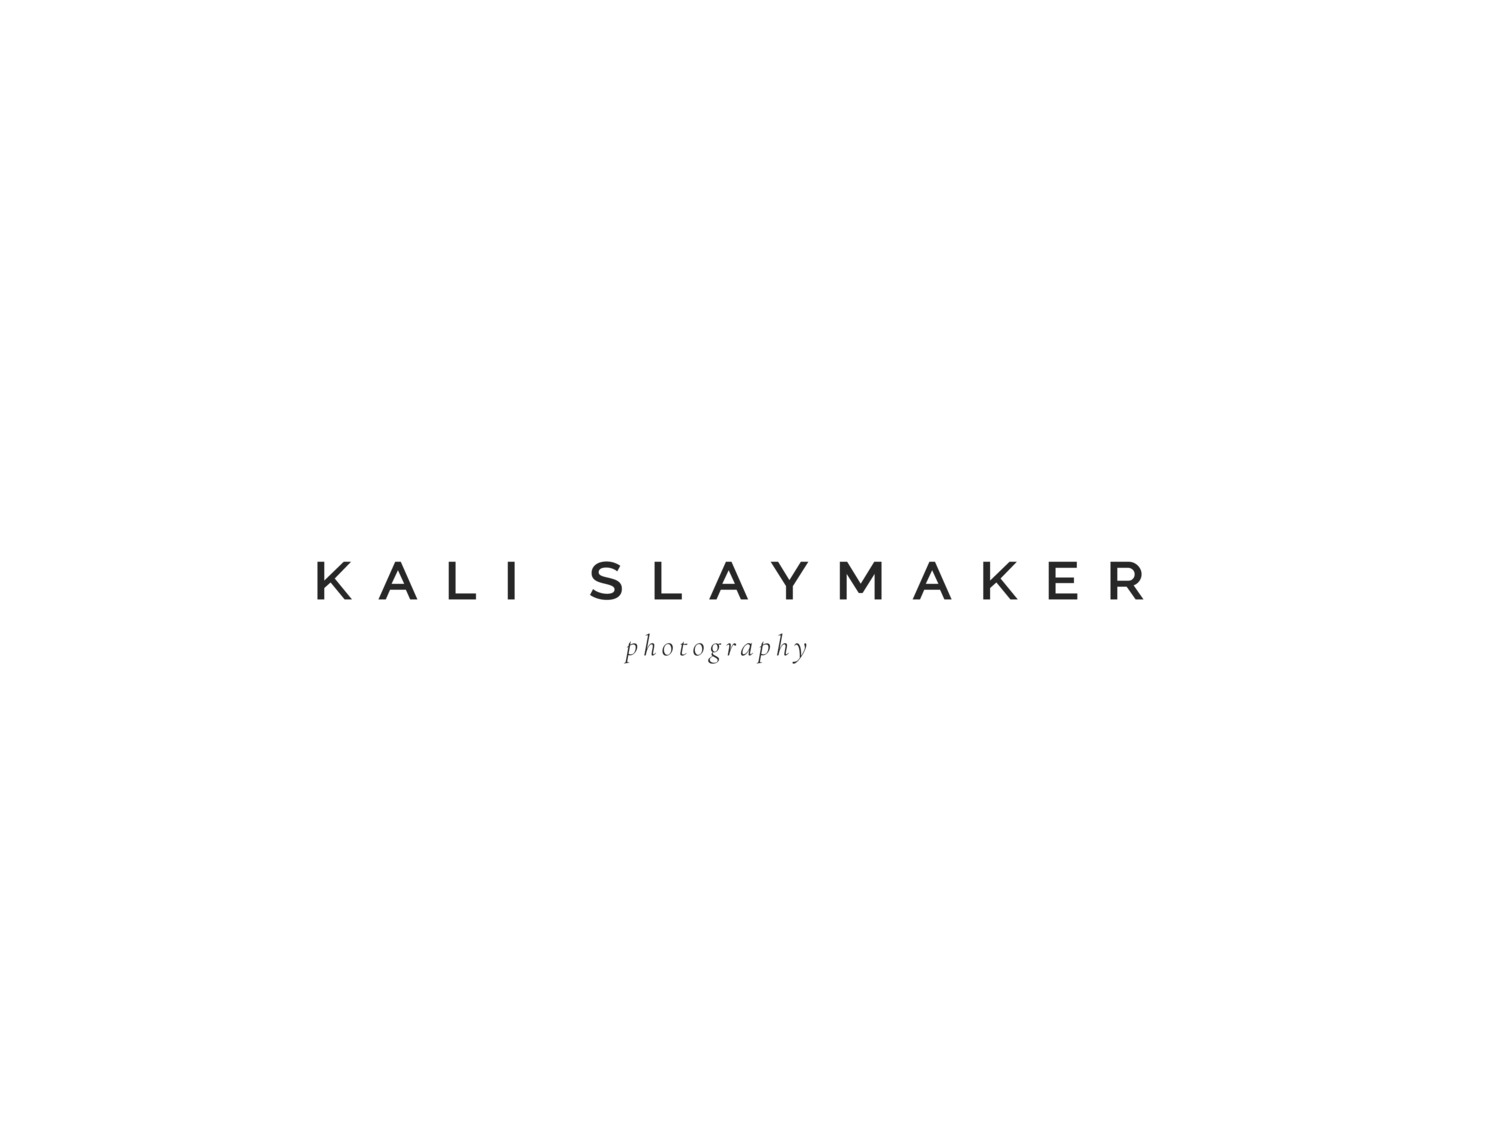 Kali Slaymaker - Iowa + Destination Wedding & Elopement Photographer